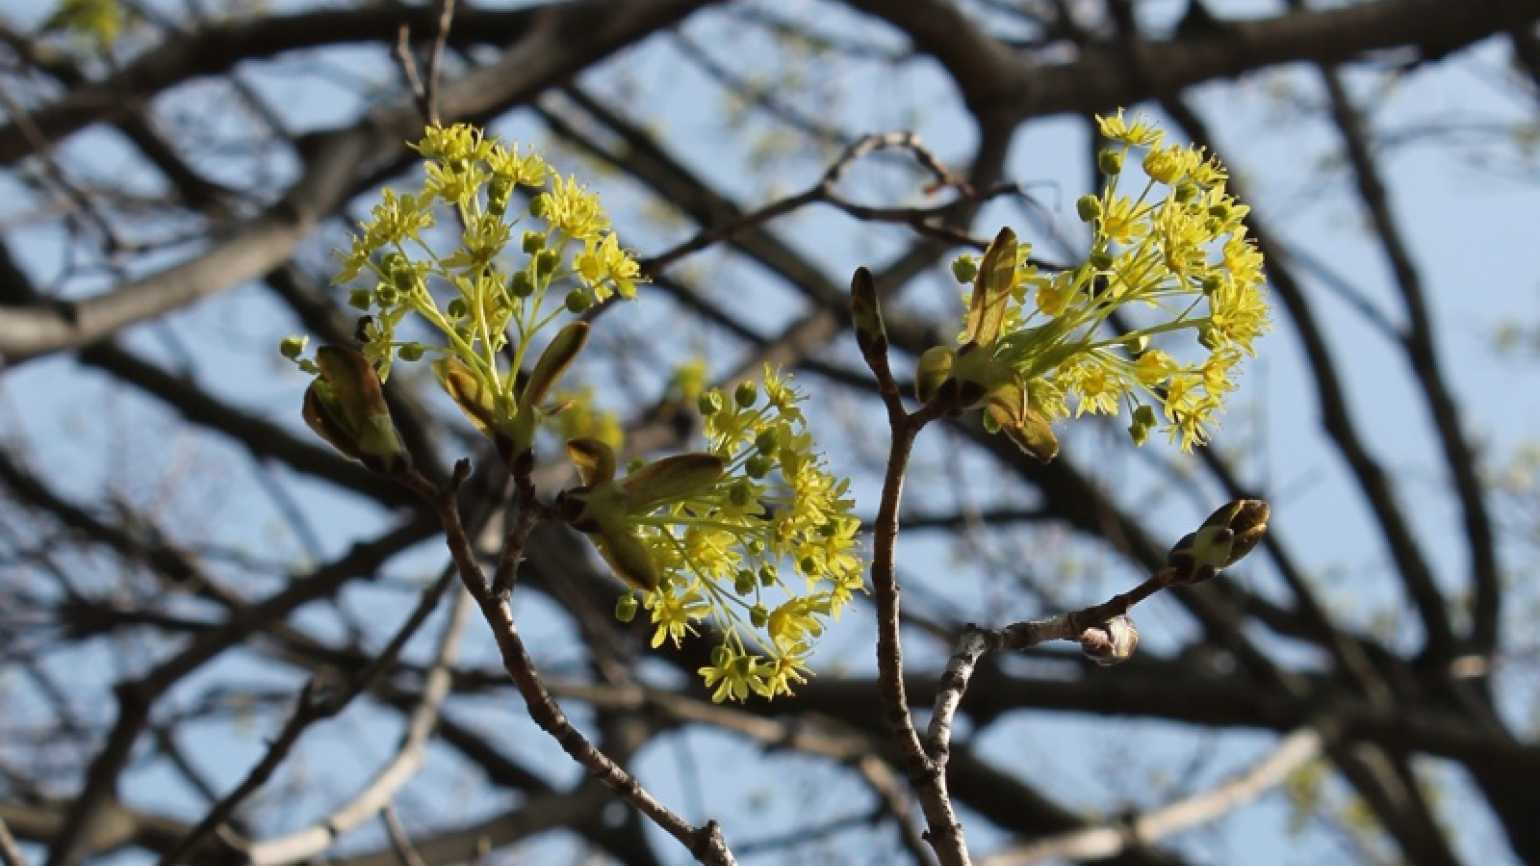 A maple tree branch showing the very first buds of spring